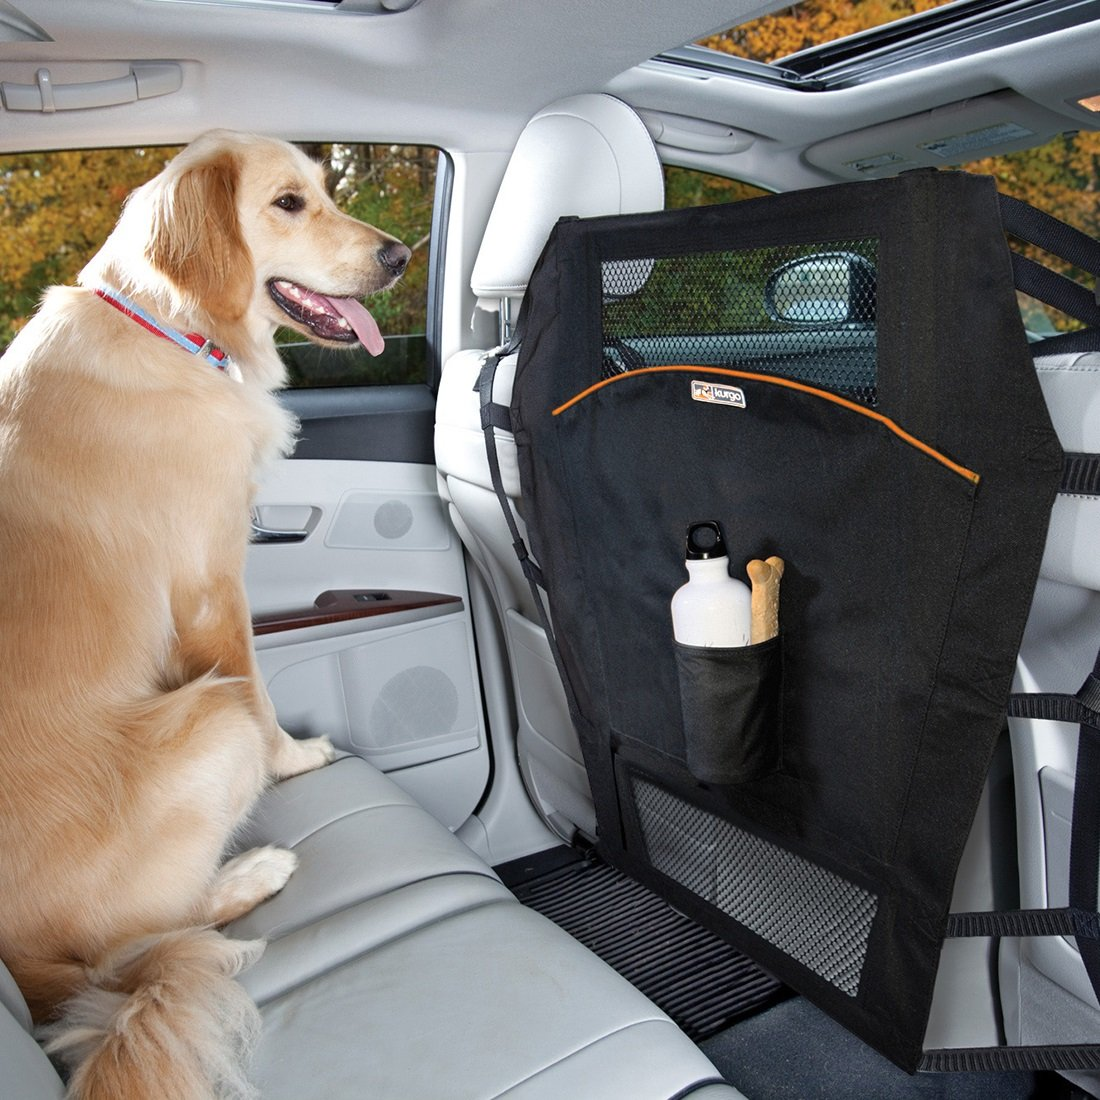 Kurgo Back Seat Dog Barrier for Cars & Suv | Automotive Pet Barrier | Backseat Barrier for Dogs | Reduce Distractions while Driving | Mesh Opening | Easy Installation | Storage Pockets | Universal Fit